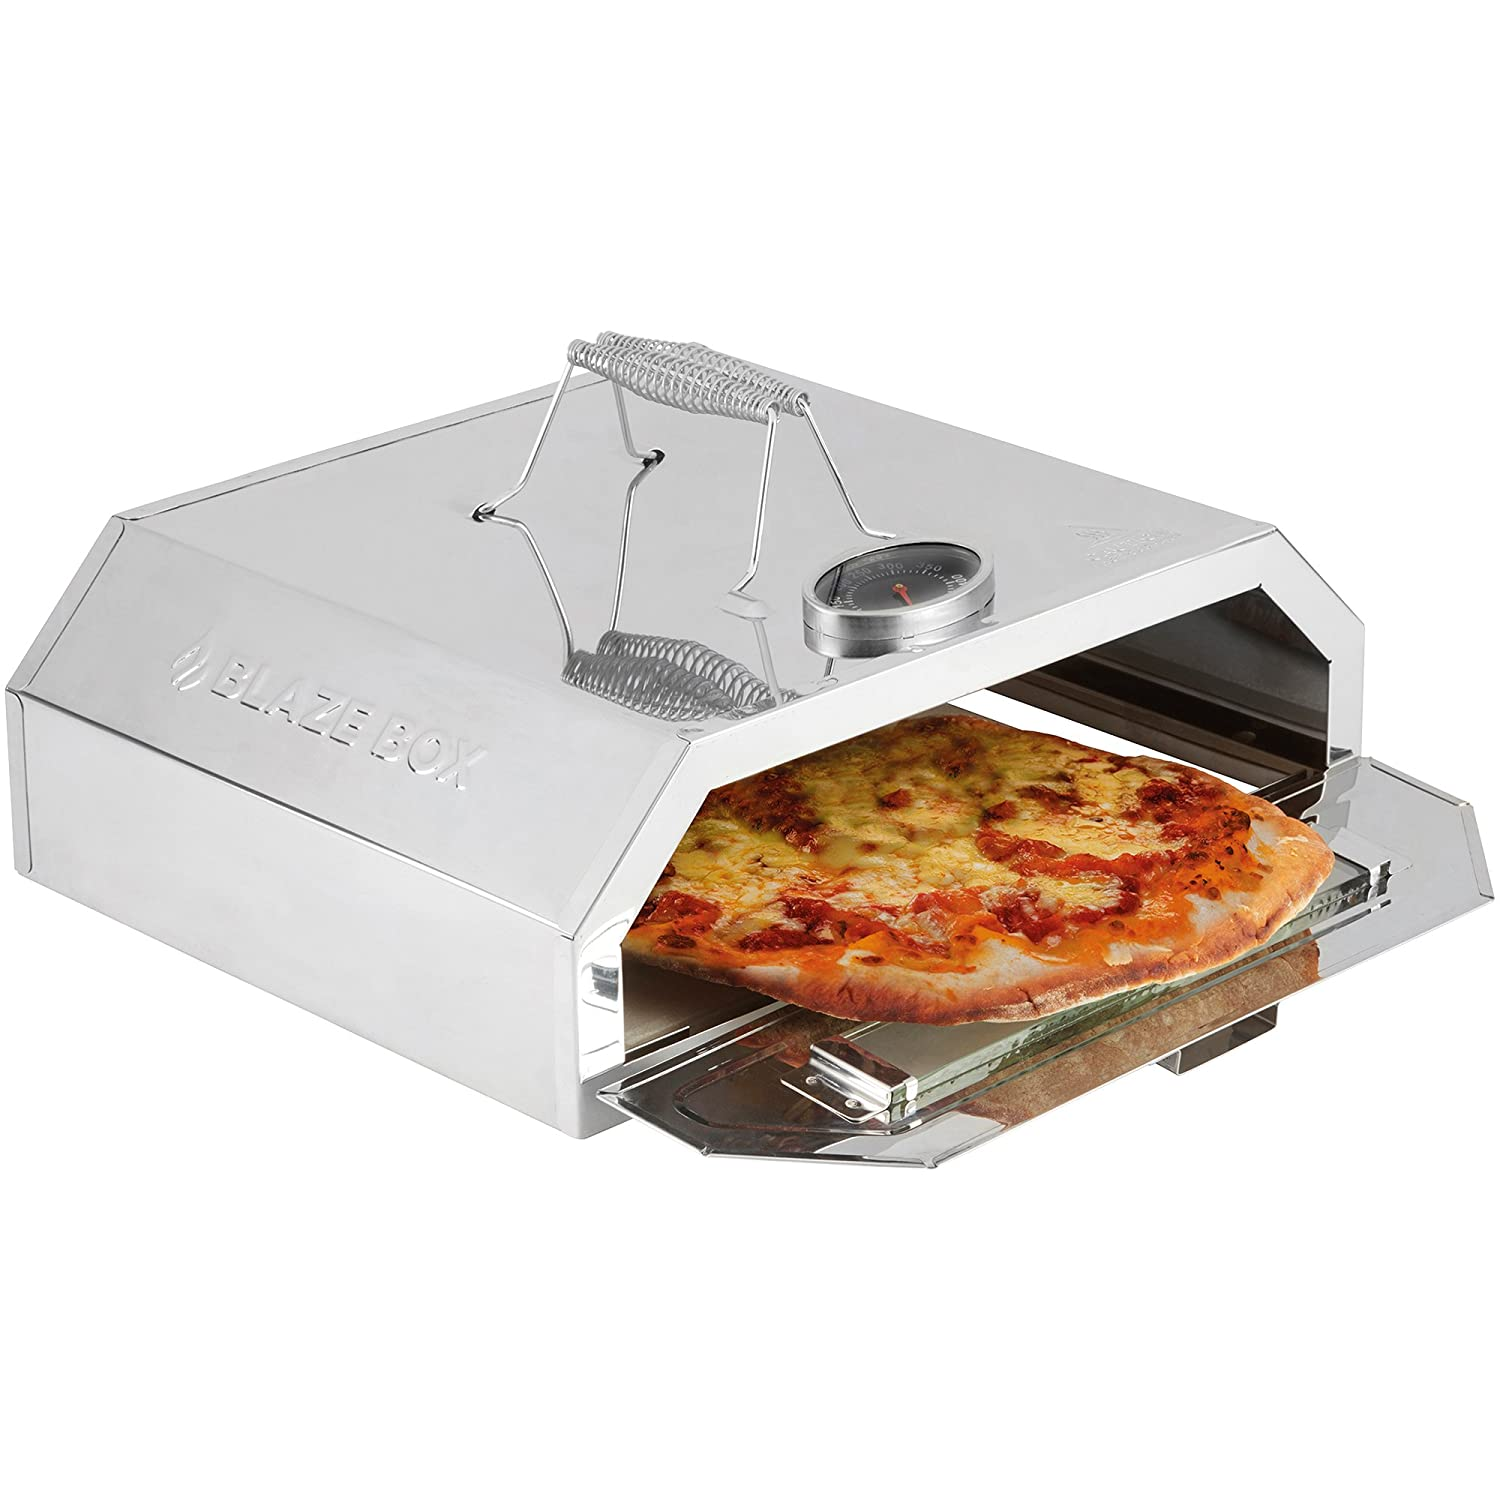 BBQ Pizza Oven with Temperature Gauge for Outdoor Garden Barbecues & Gas Grills by Blaze Box Clifford James